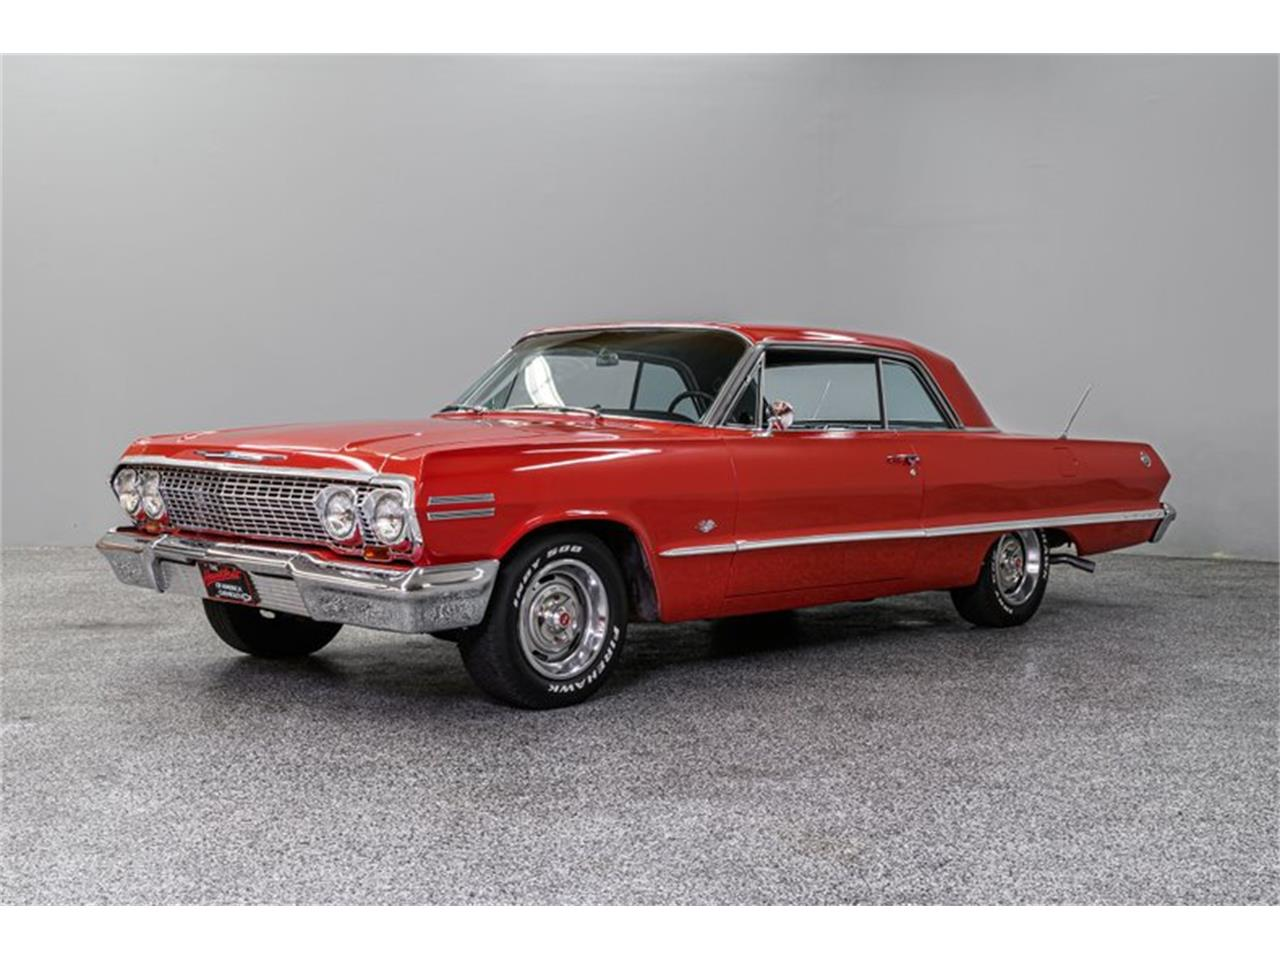 1963 Chevrolet Impala (CC-1362119) for sale in Concord, North Carolina